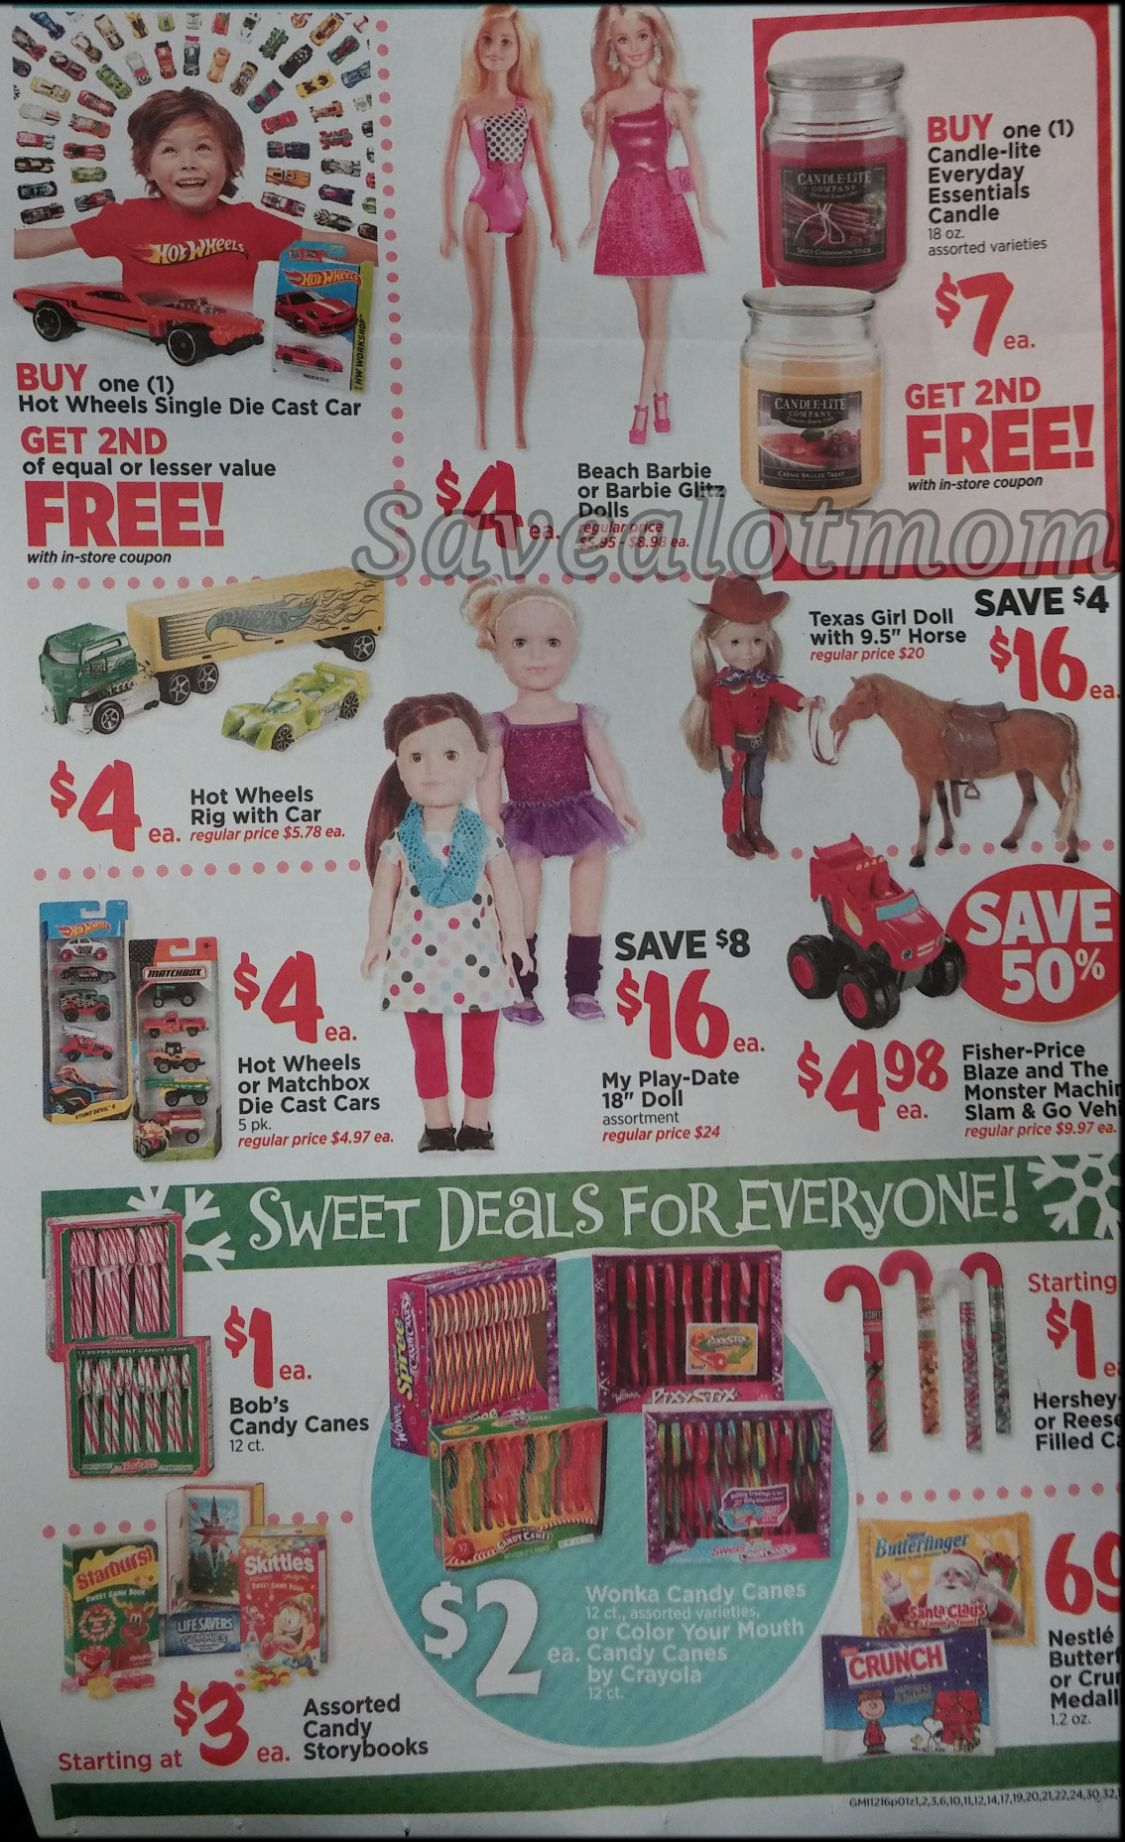 HEB Toys and Holiday Candies on Sale and Digital Coupon